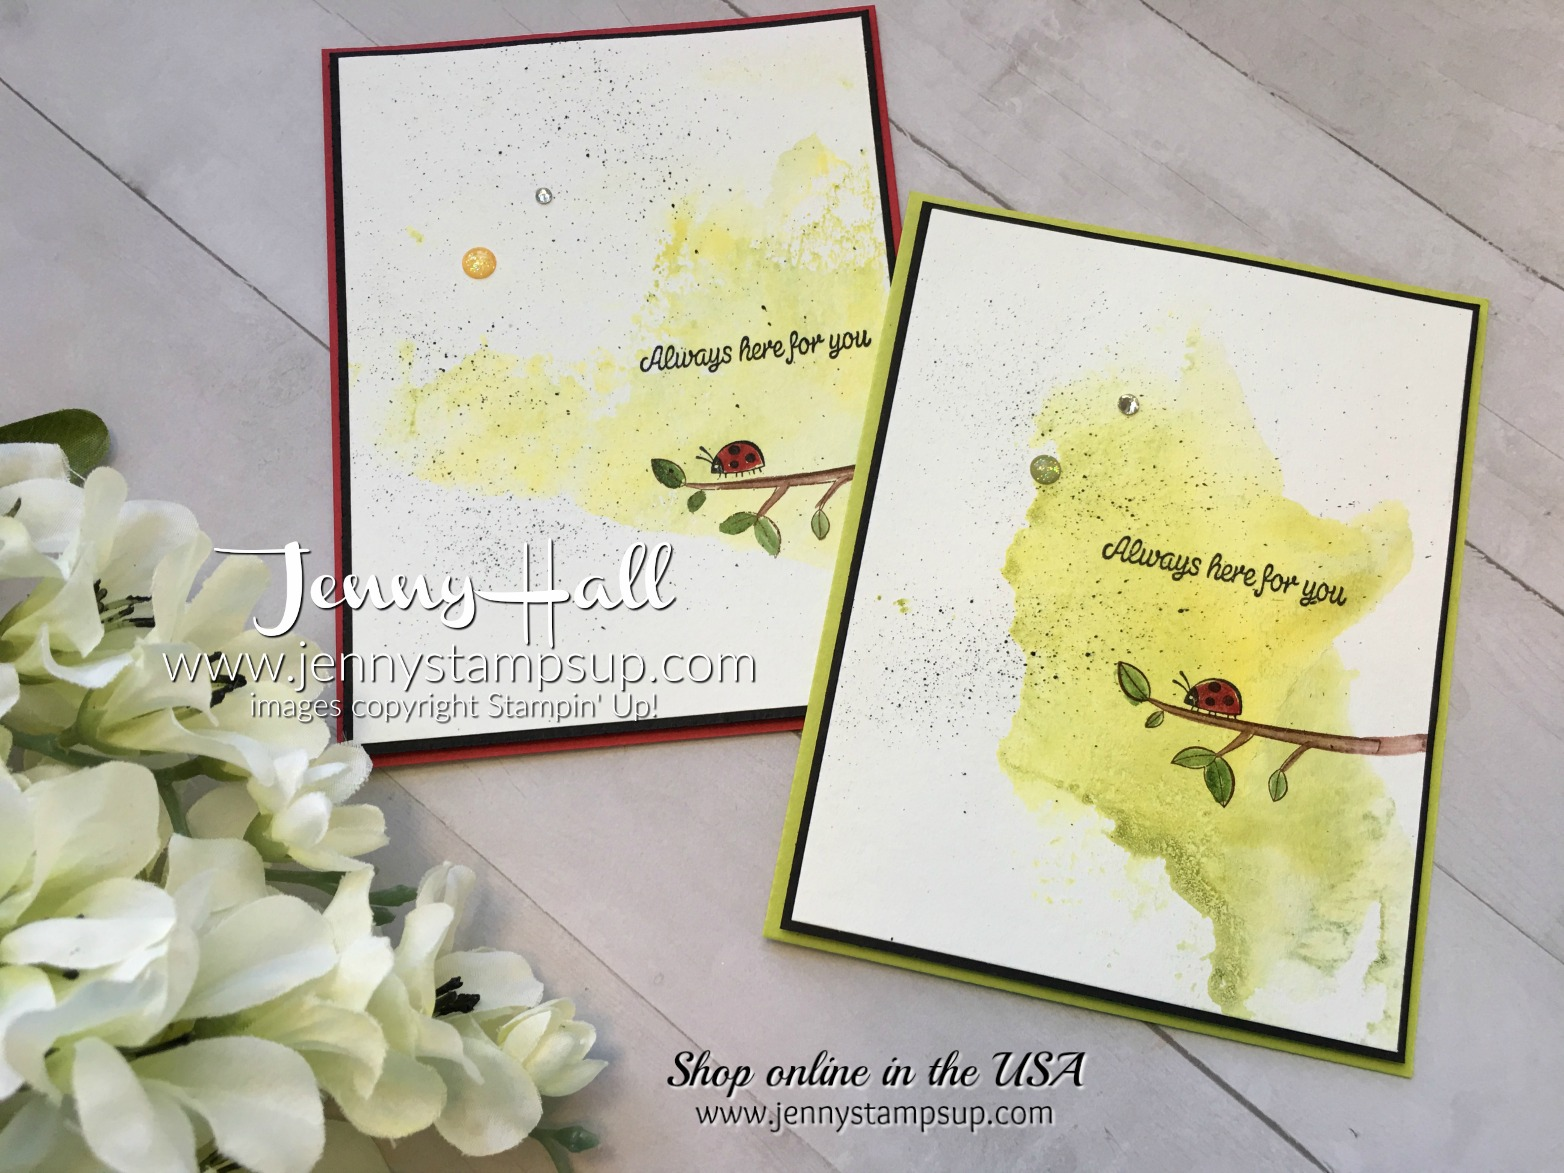 2017 OnStage Swap cards by Jenny Hall at www.jennystampsup.com for cardmaking, scrapbooking, papercraft gift giving, video tutorials and more!